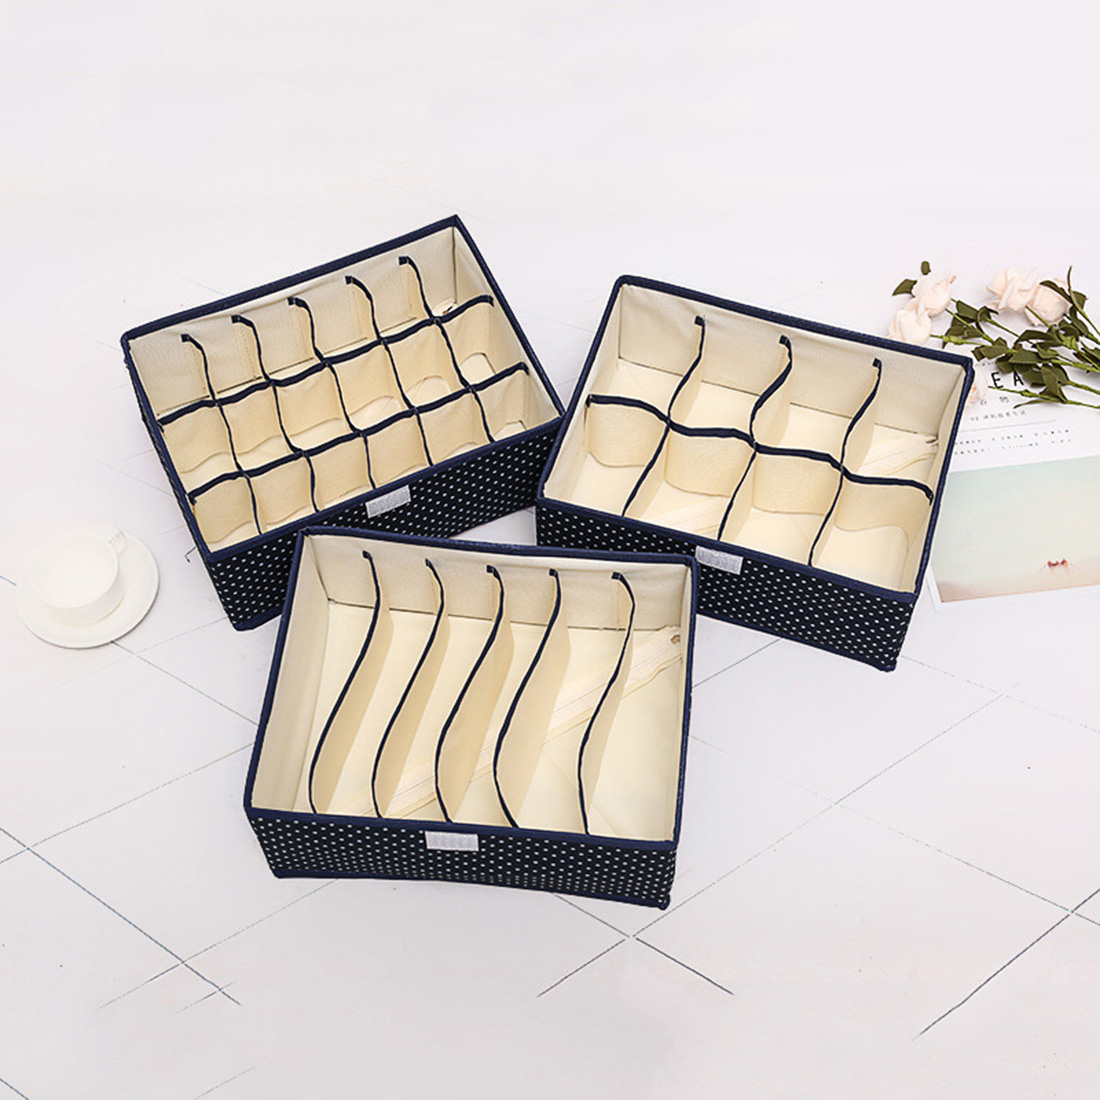 1pcs Foldable Clothing Closet Organizer Home Underwear Storage Boxes For Bra Tie Socks Container Organizers Closet Draw Dividers